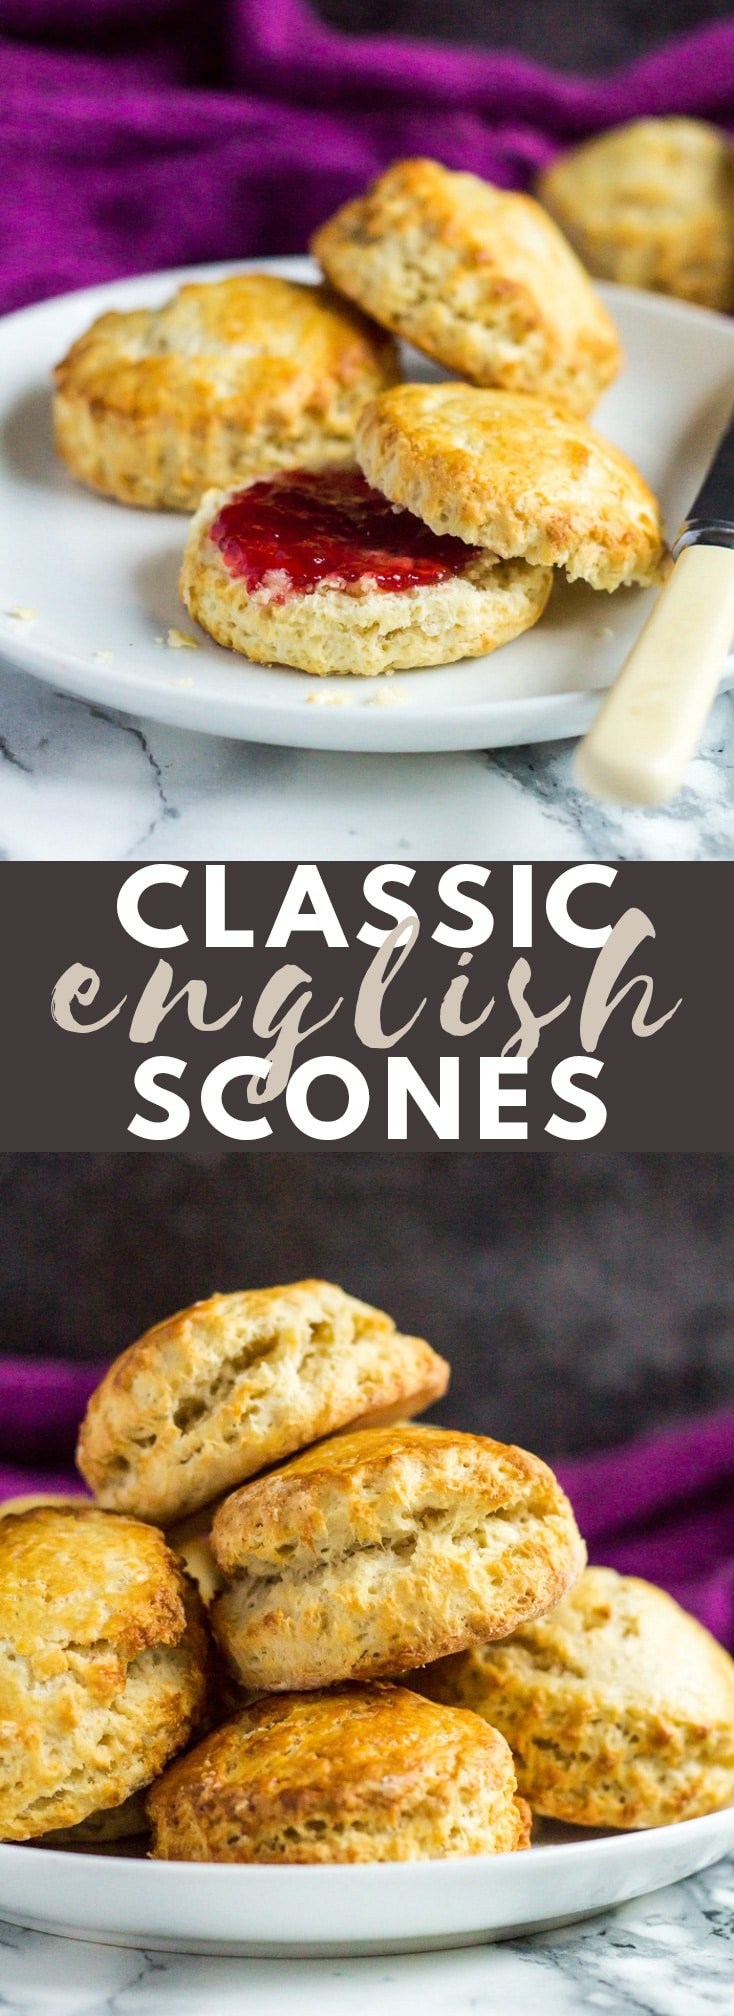 Classic English Scones - These deliciously fluffy scones are perfect served warm or cold with clotted cream and jam. Pair with your morning cup of tea for an indulgent breakfast! #scones #breakfast #breakfastrecipes